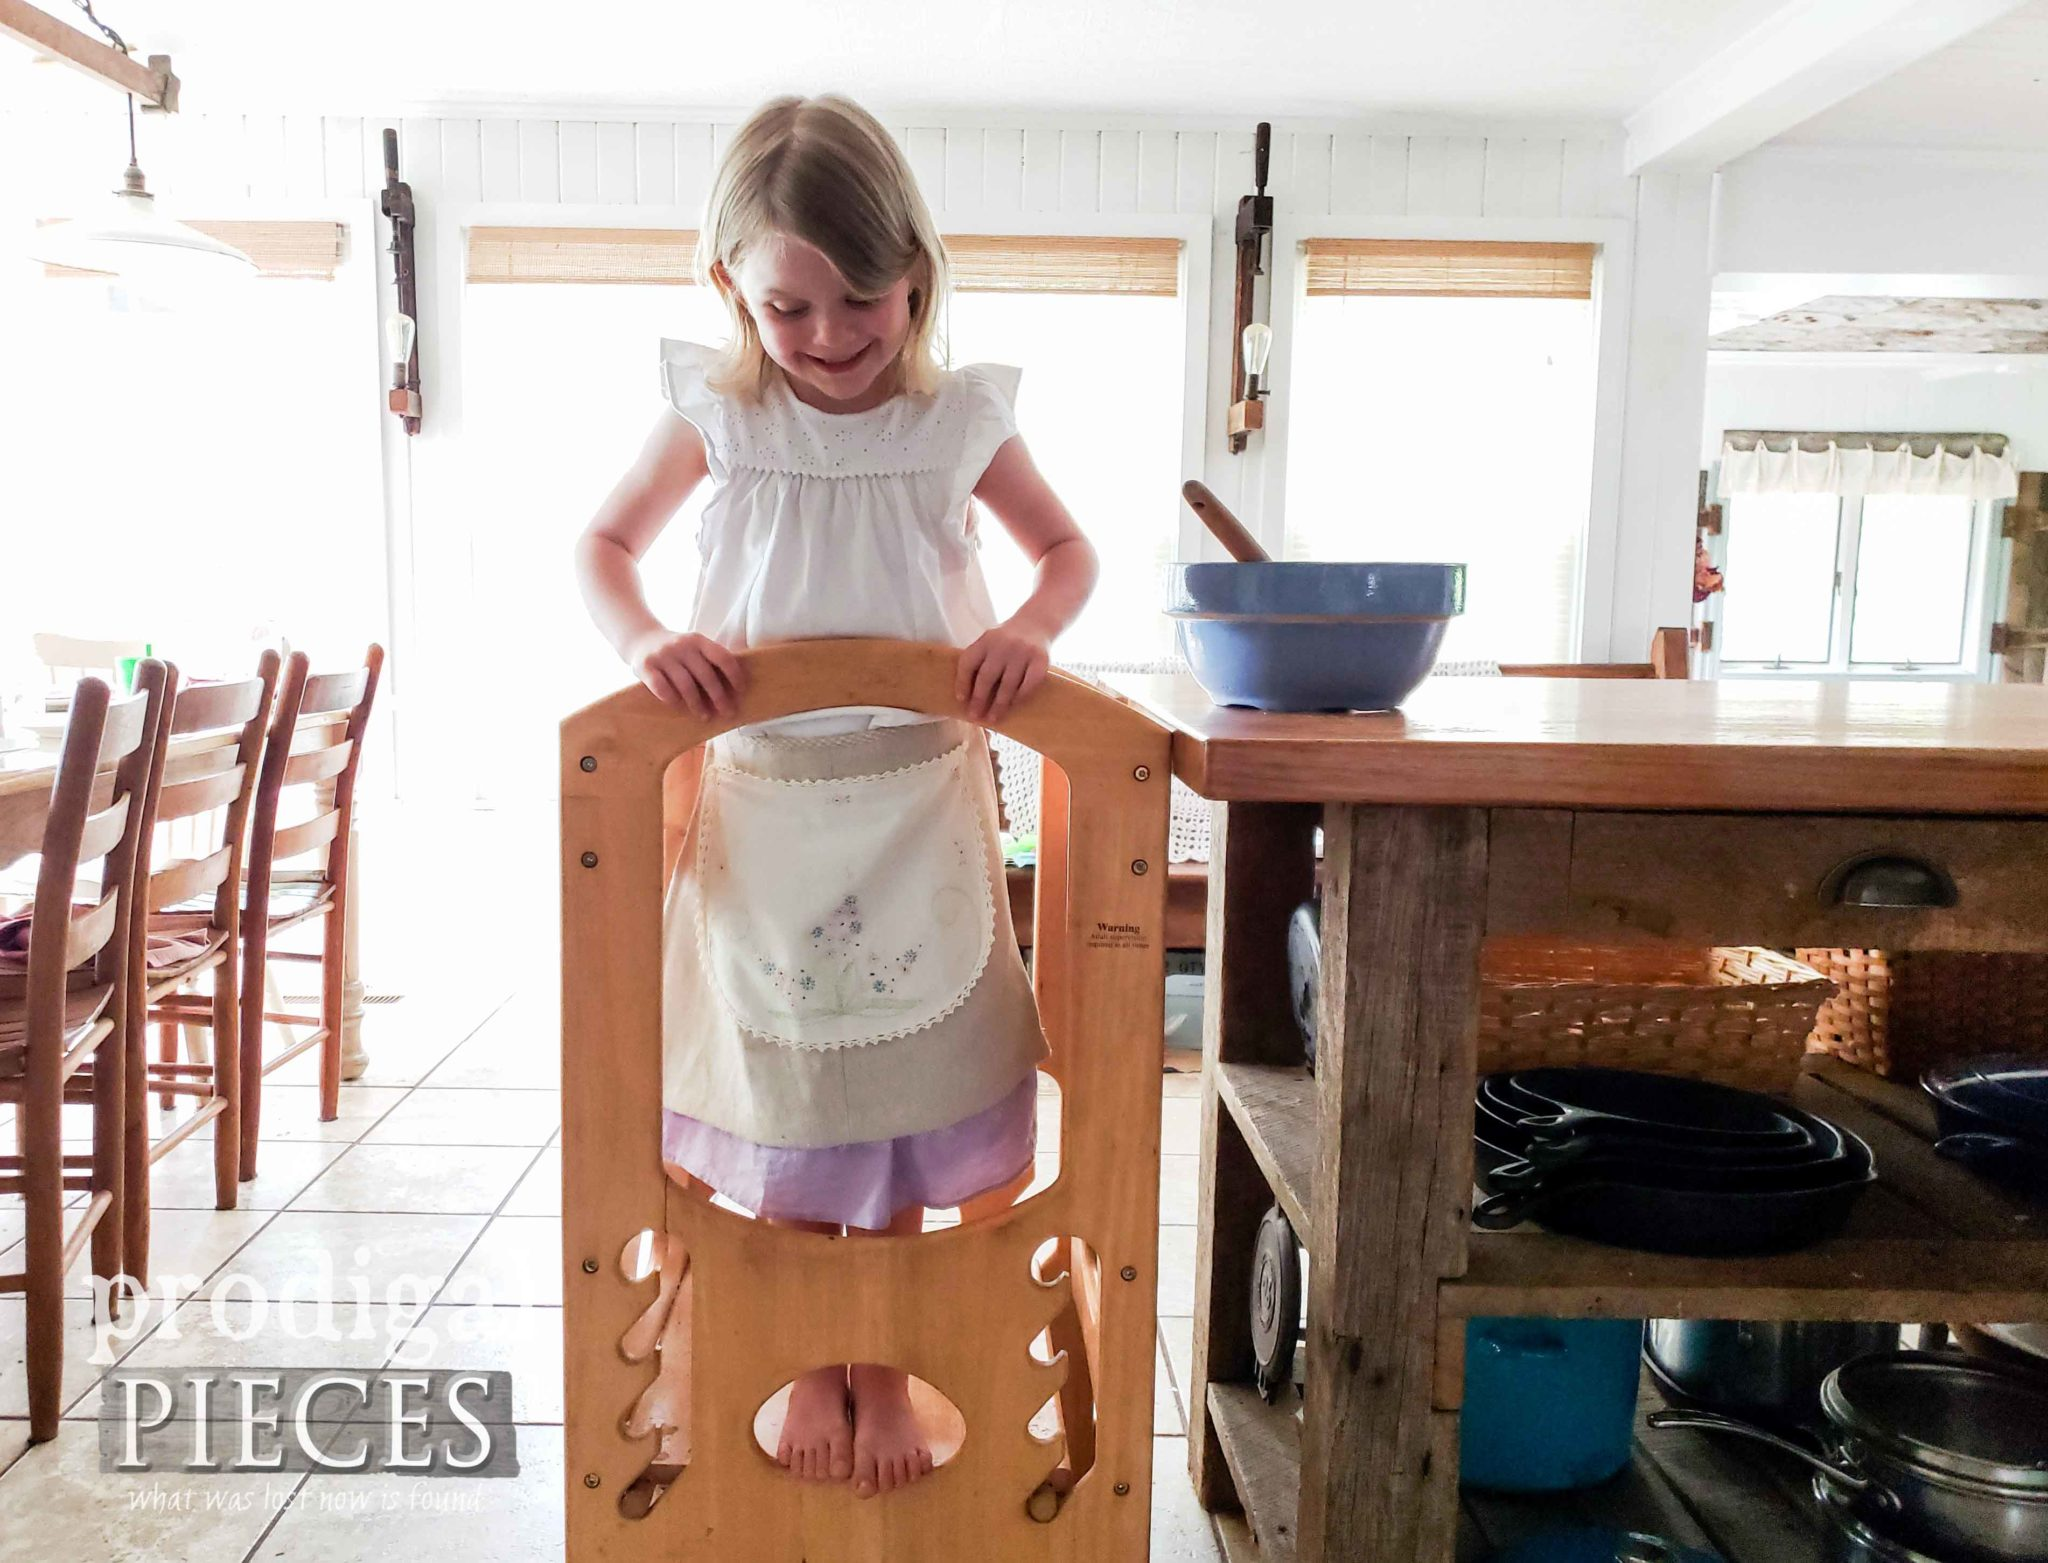 Toddler Learning Tower for Kids Helping in the Kitchen | DIY details at prodigalpieces.com #prodigalpieces #diy #home #homedecor #kids